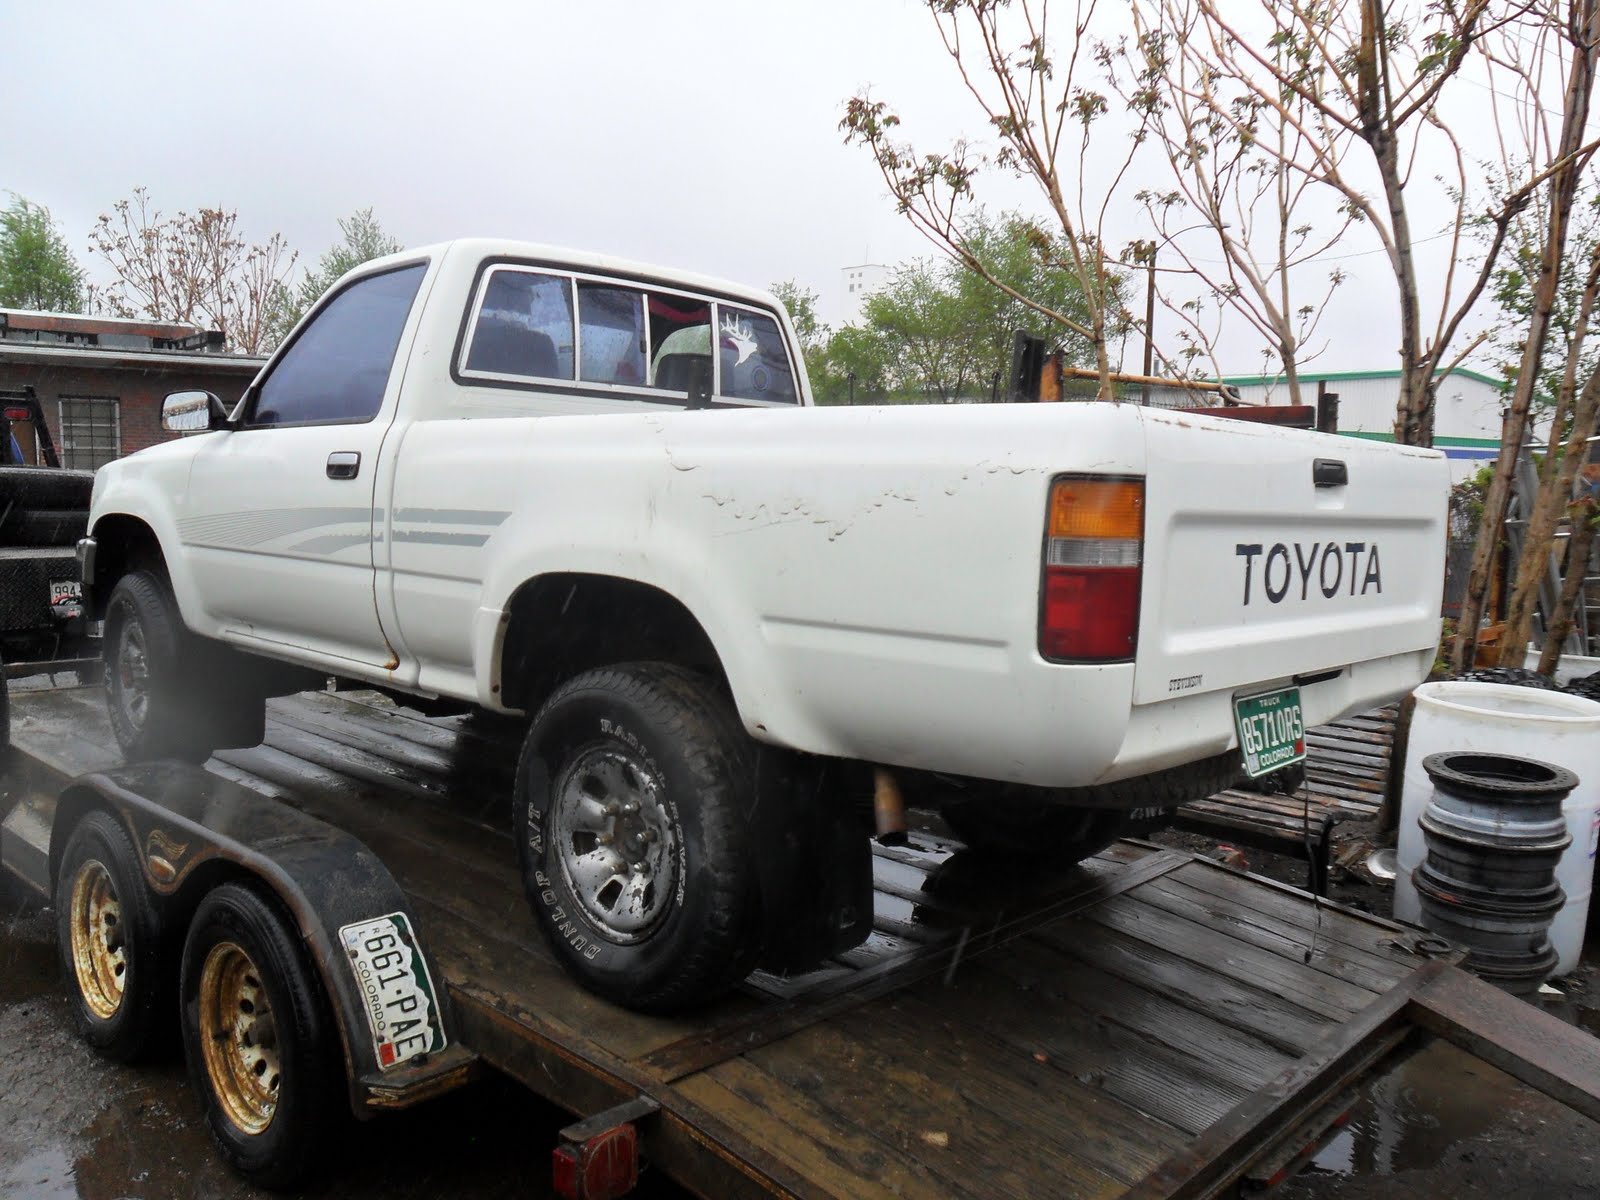 new arrivals at jim 39 s used toyota truck parts 1991 toyota pickup 4x4. Black Bedroom Furniture Sets. Home Design Ideas